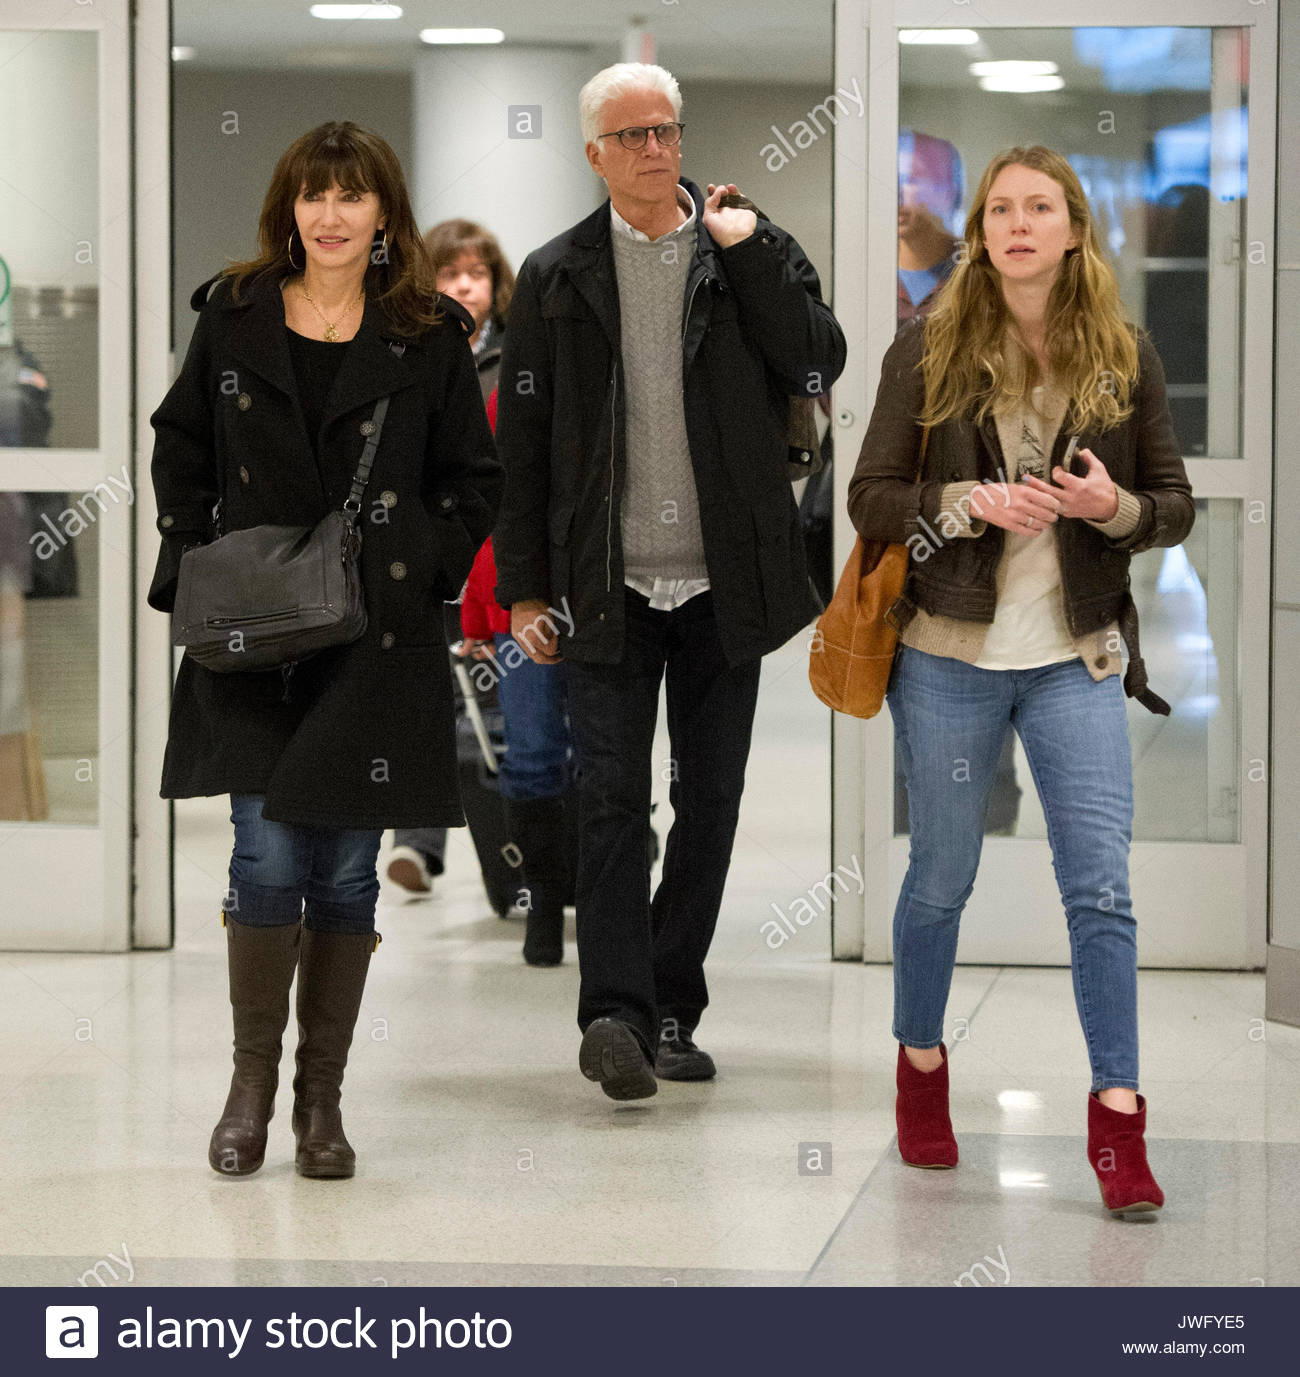 Stock photo ted danson mary steenburgen and lilly mcdowell ted danson mary steenburgen and her daughter lilly mcdowell arrive at jfk airport in new